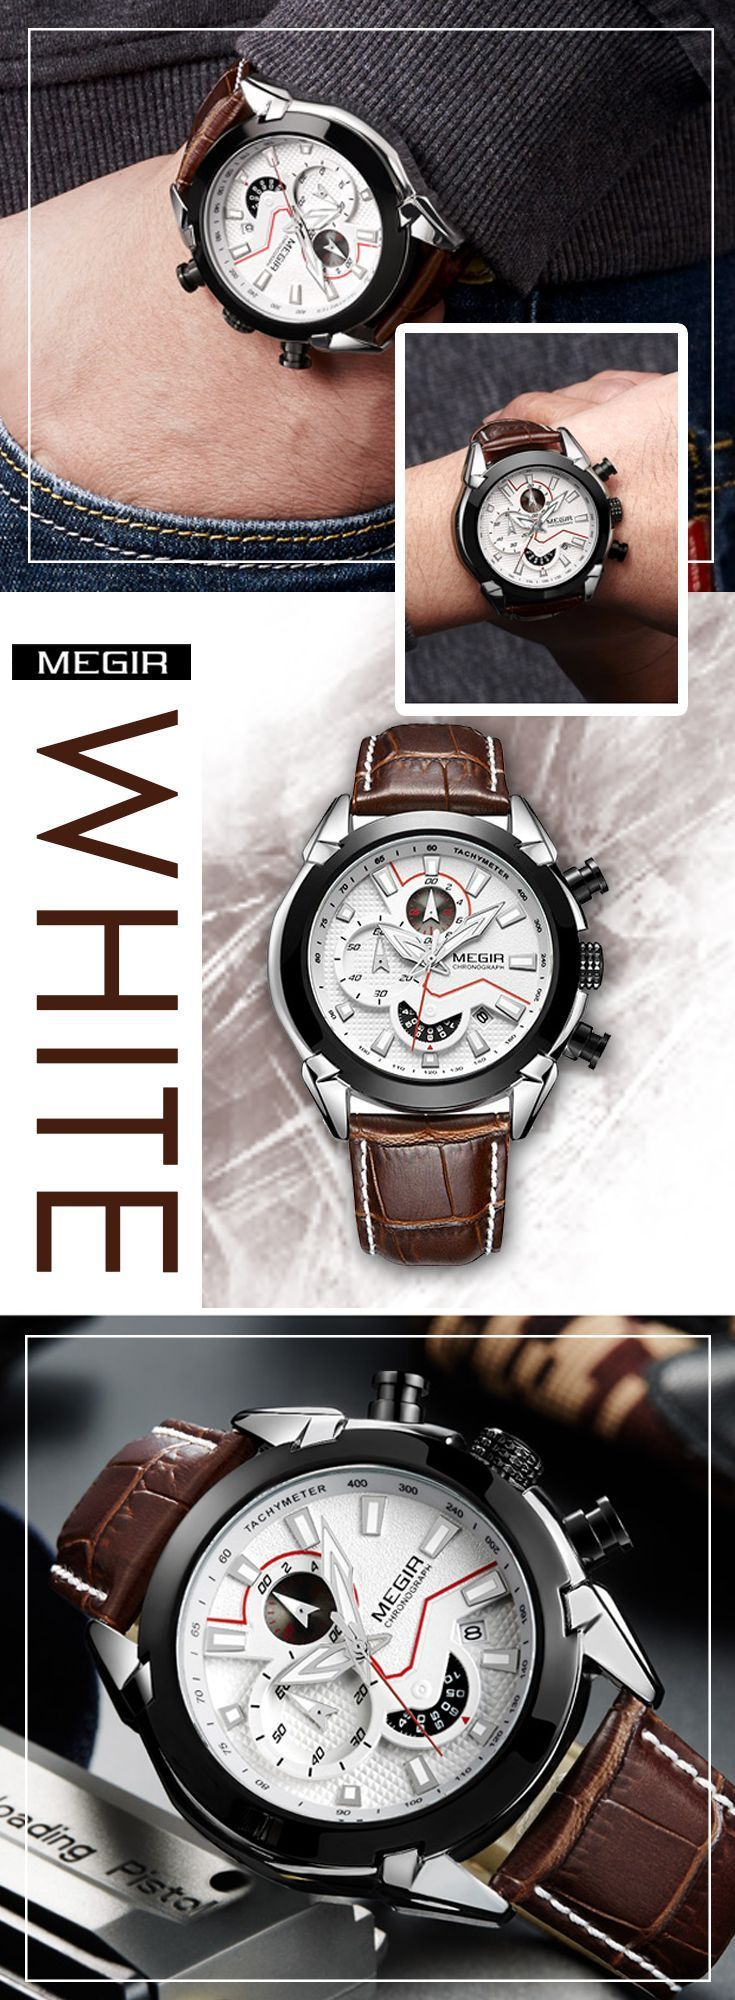 Men's luxury sport watches - Megir 2065 Leather band watch timepiece chronograph - men's top brand style affordable fashion accessories #menswatch #leatherwatch #watches #menswatchesleather